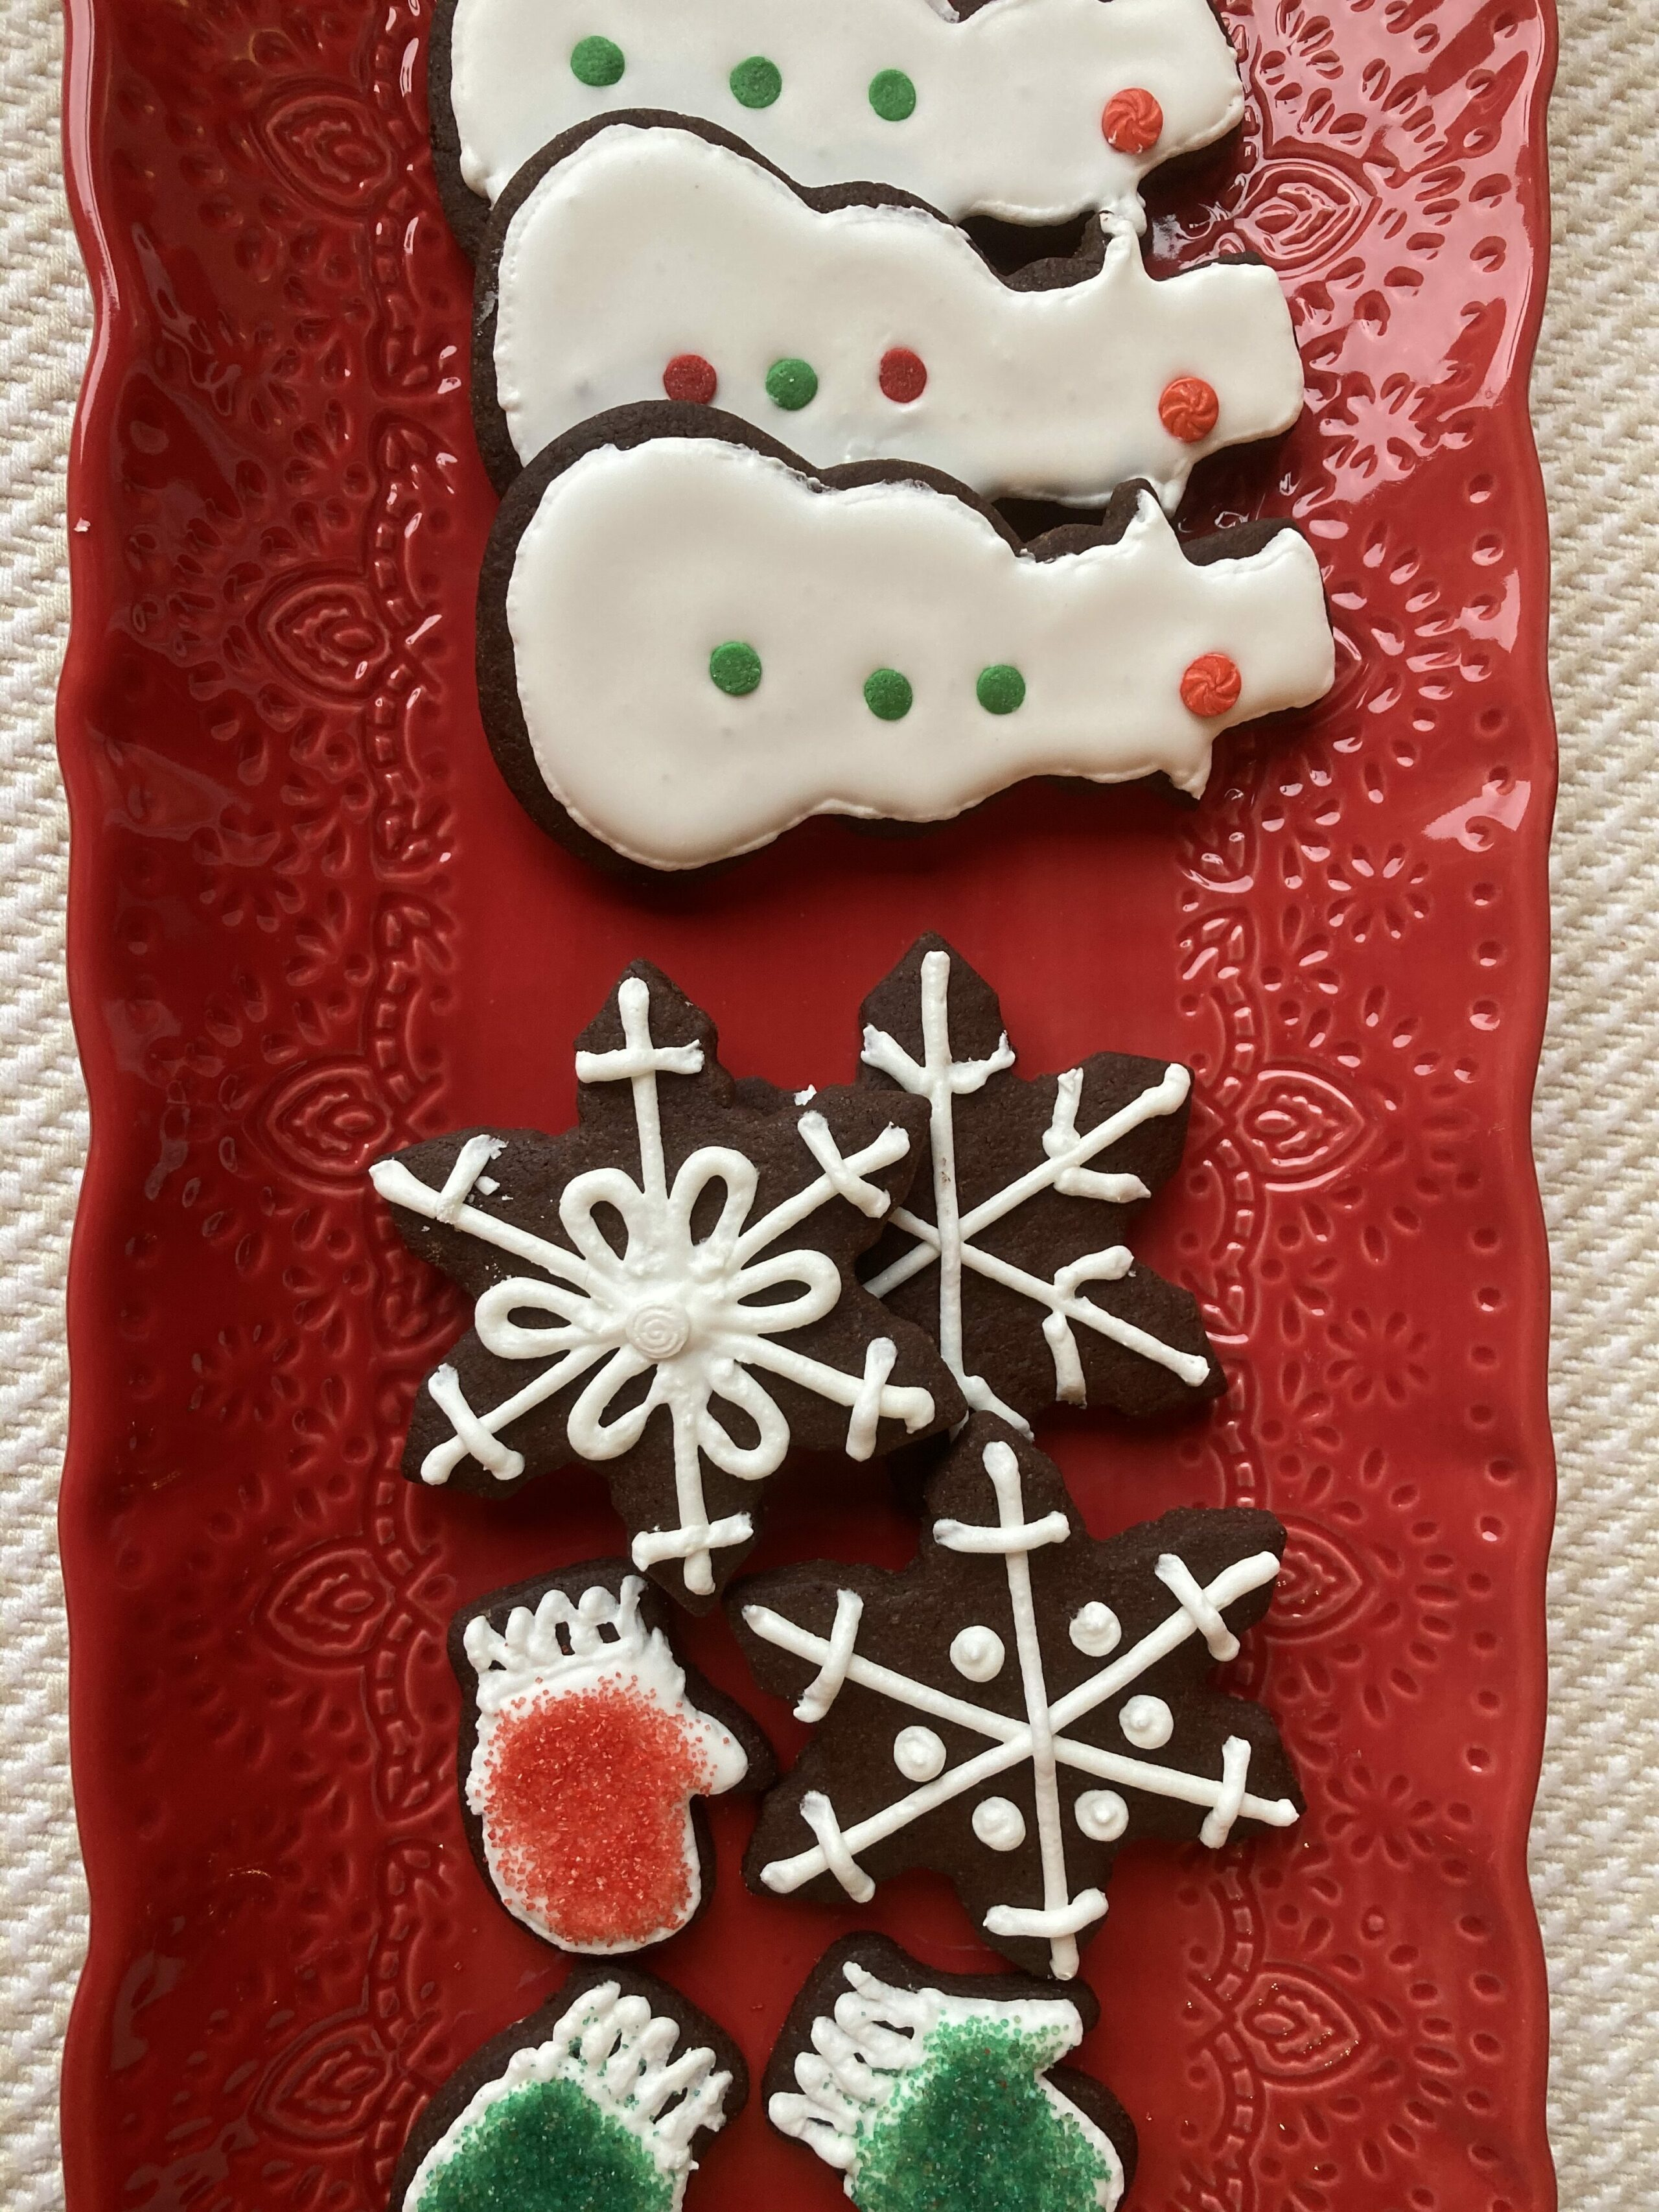 decorated chocolate cookies on red platter